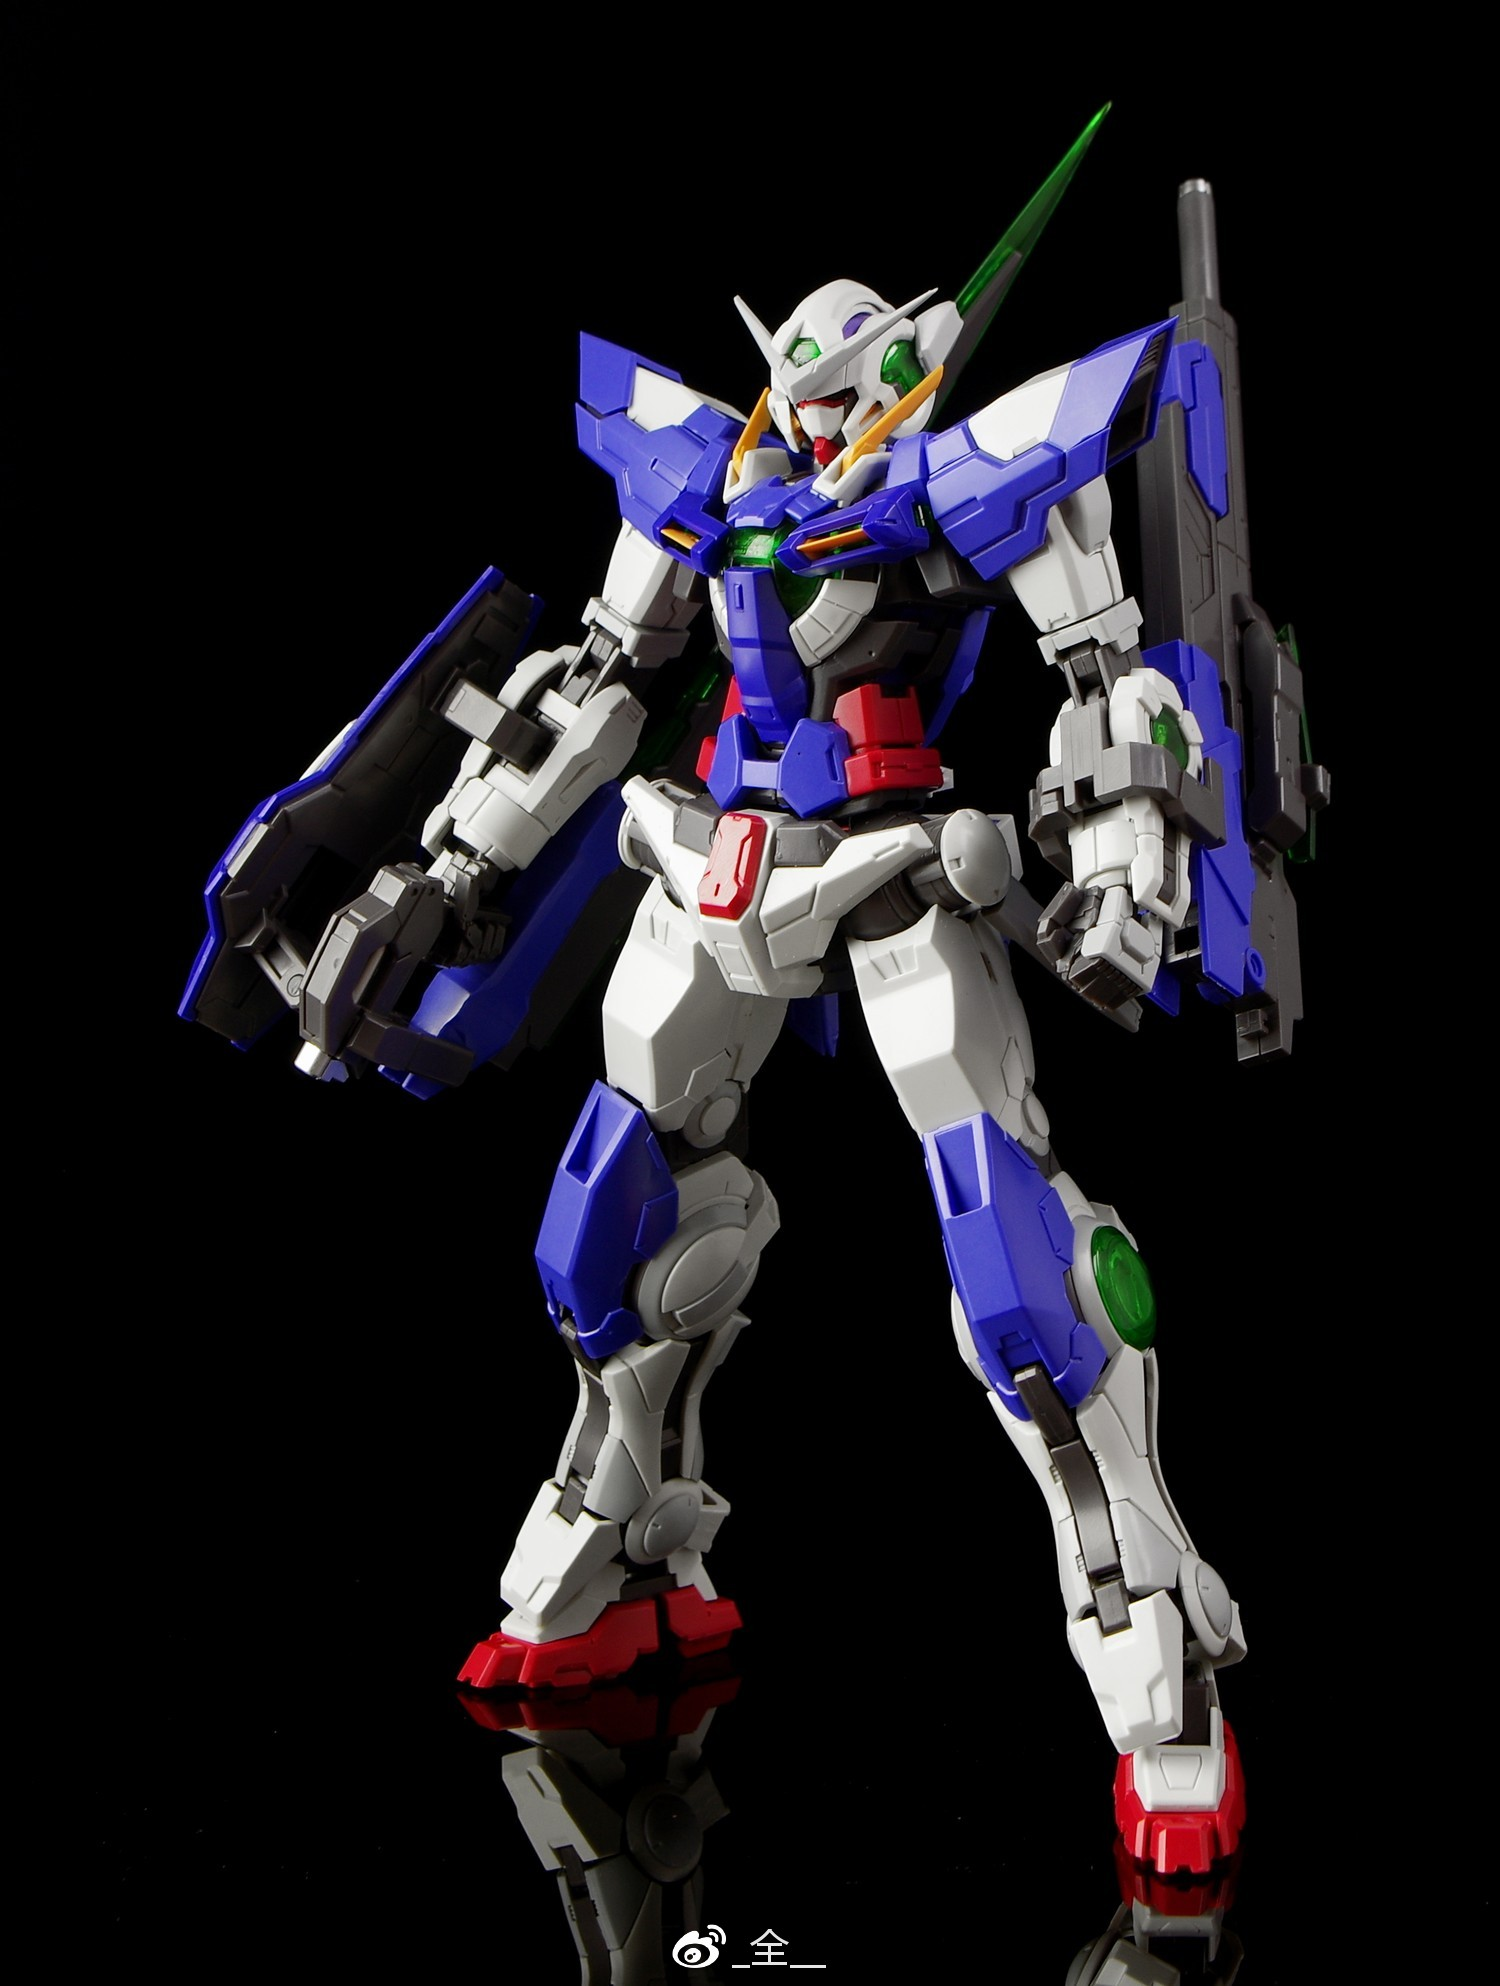 S269_mg_exia_led_hobby_star_inask_094.jpg